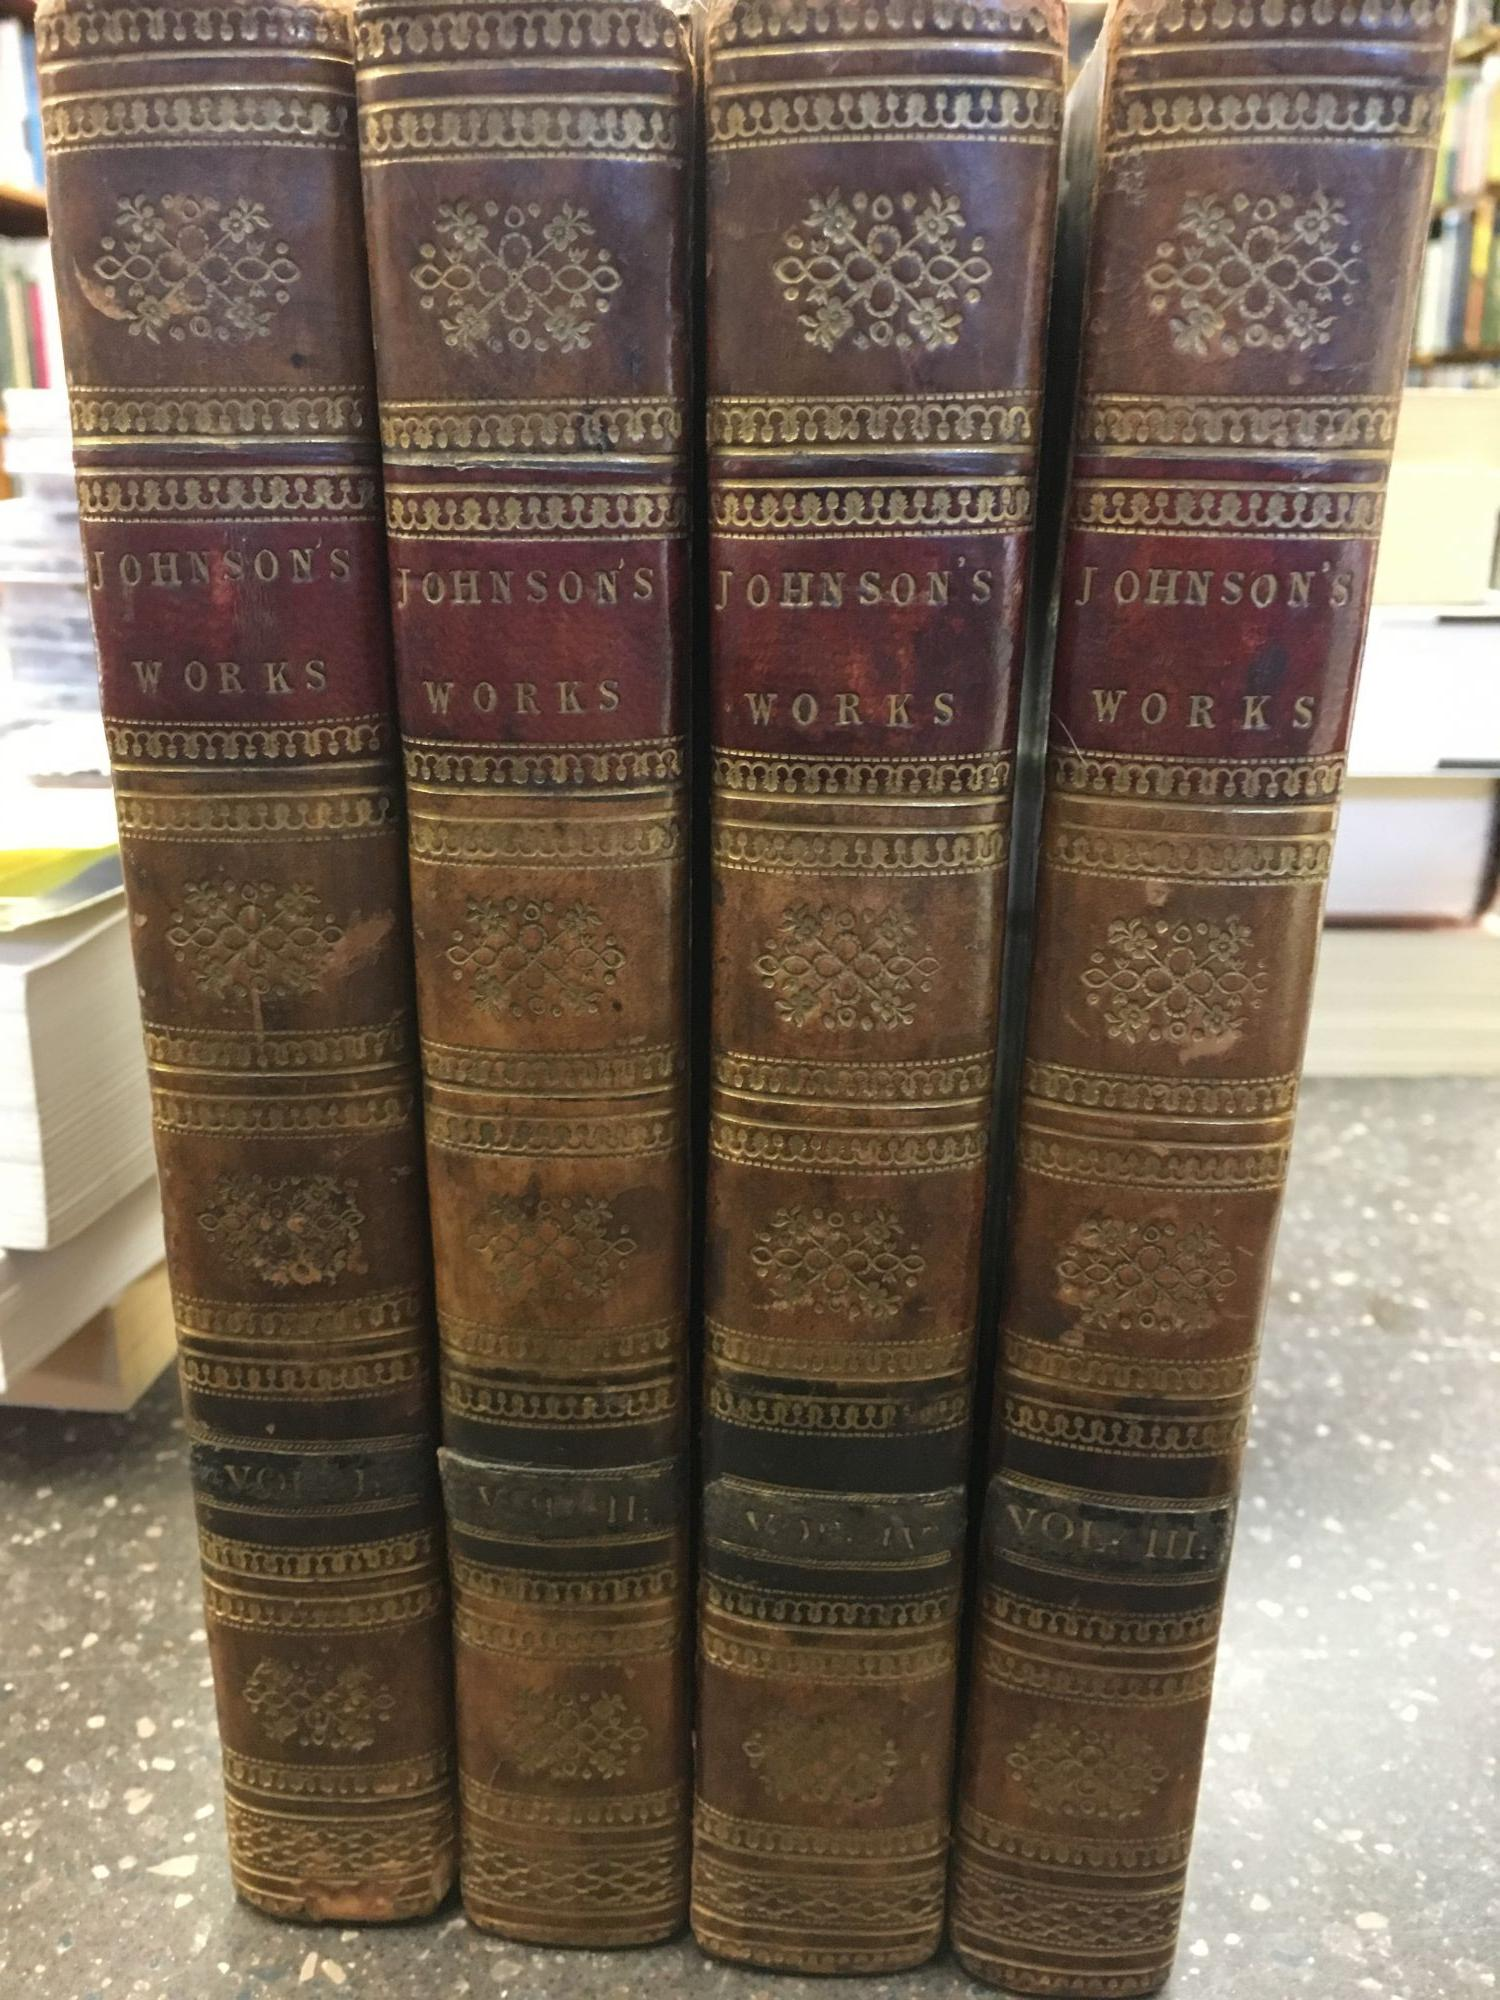 THE LIVES OF THE MOST EMINENT ENGLISH POETS. WITH CRITICAL OBSERVATIONS ON THEIR WORKS. [FOUR VOLUMES]. Samuel Johnson.